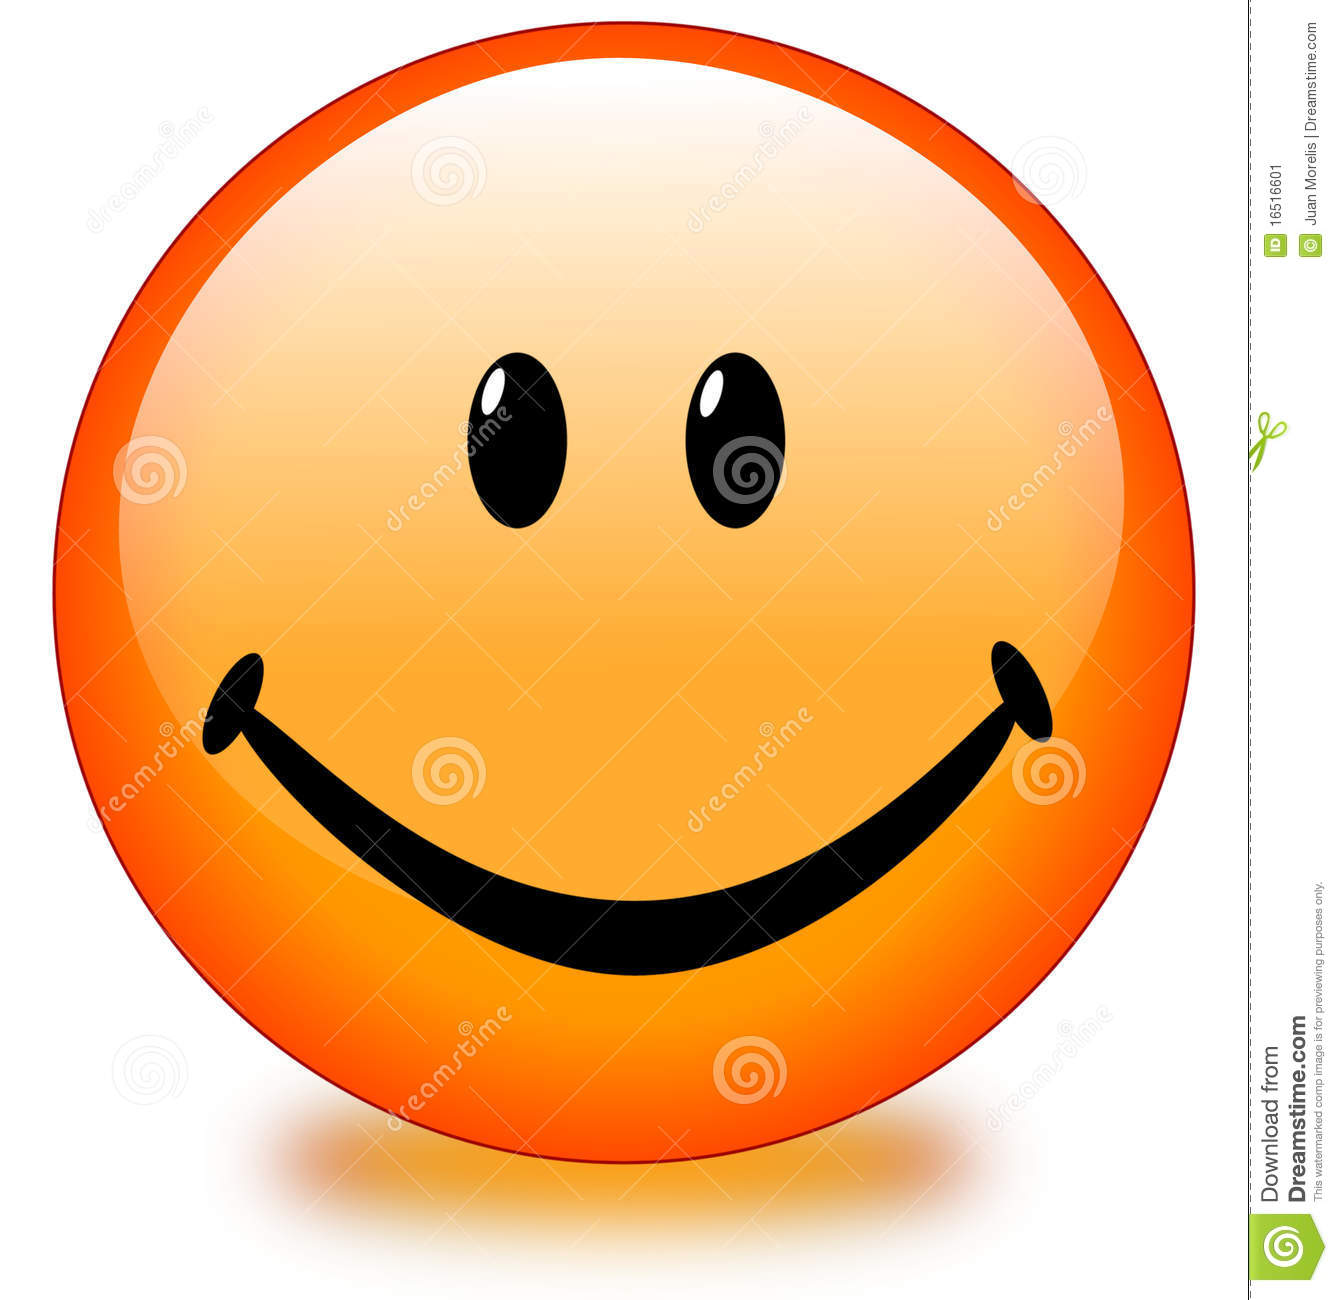 Orange Smiley Face Button Stock Image - Image: 16516601